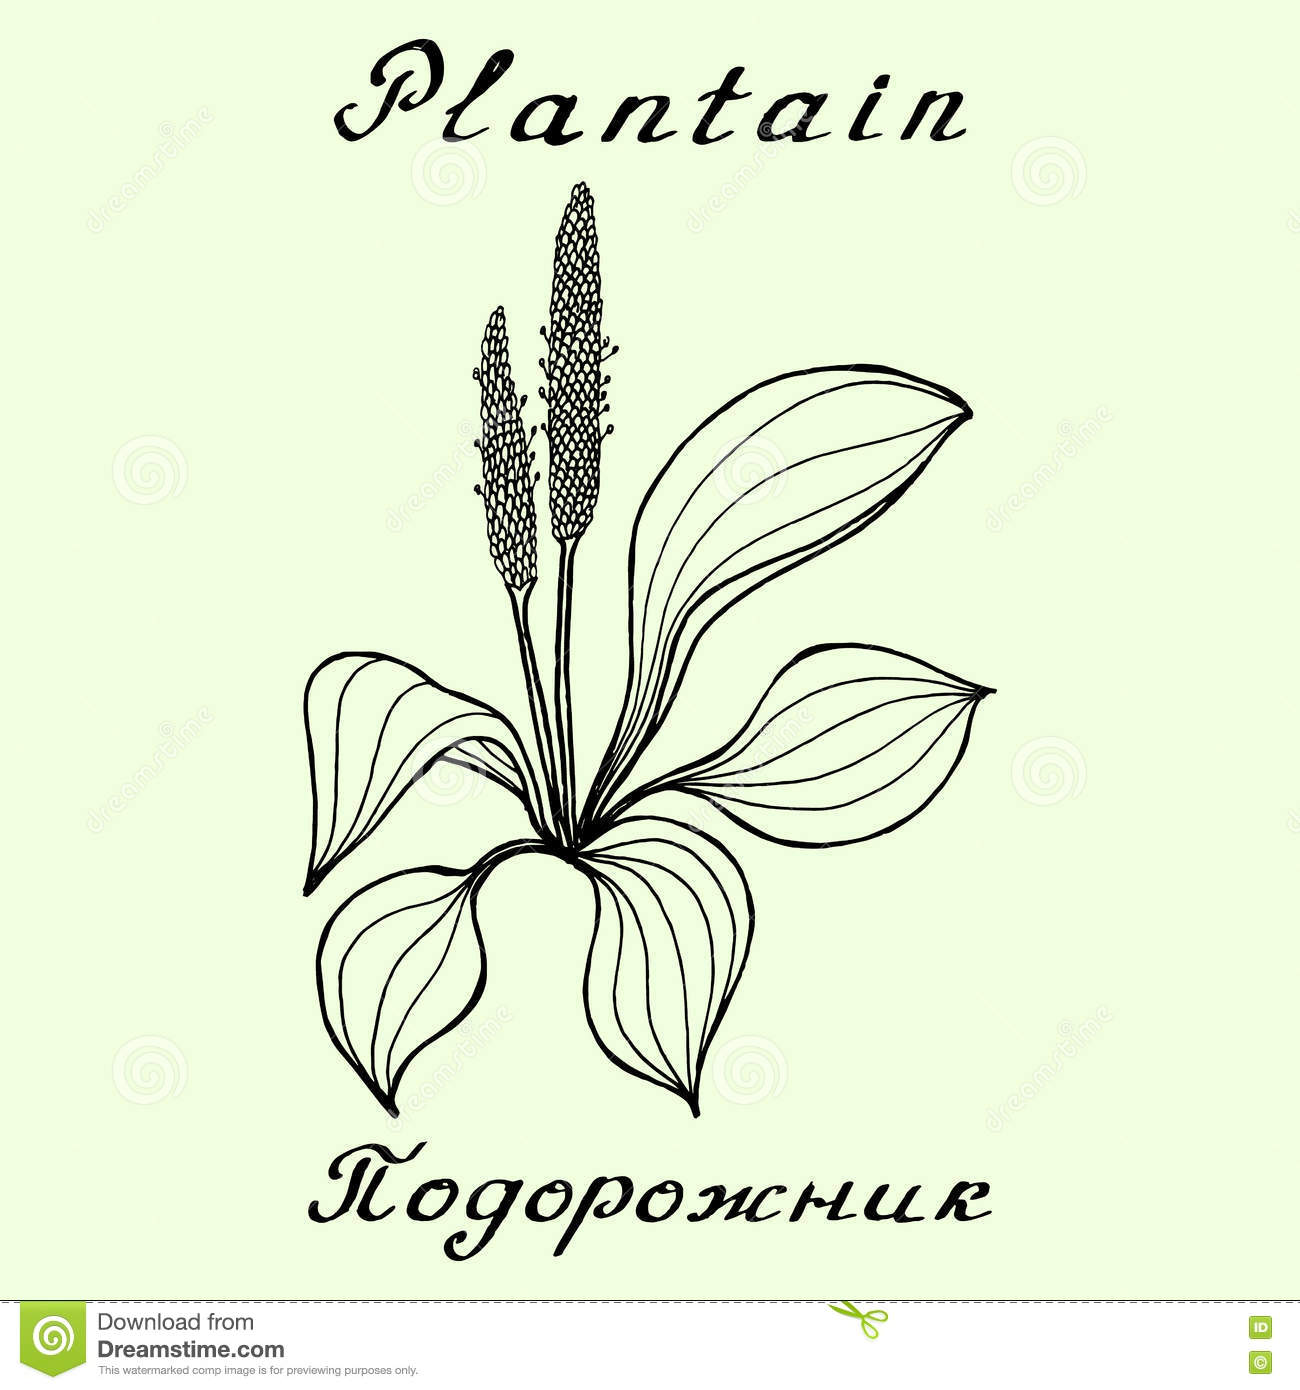 1300x1390 Image Result For Plantain Meadow Drawing Inspiration For Flo